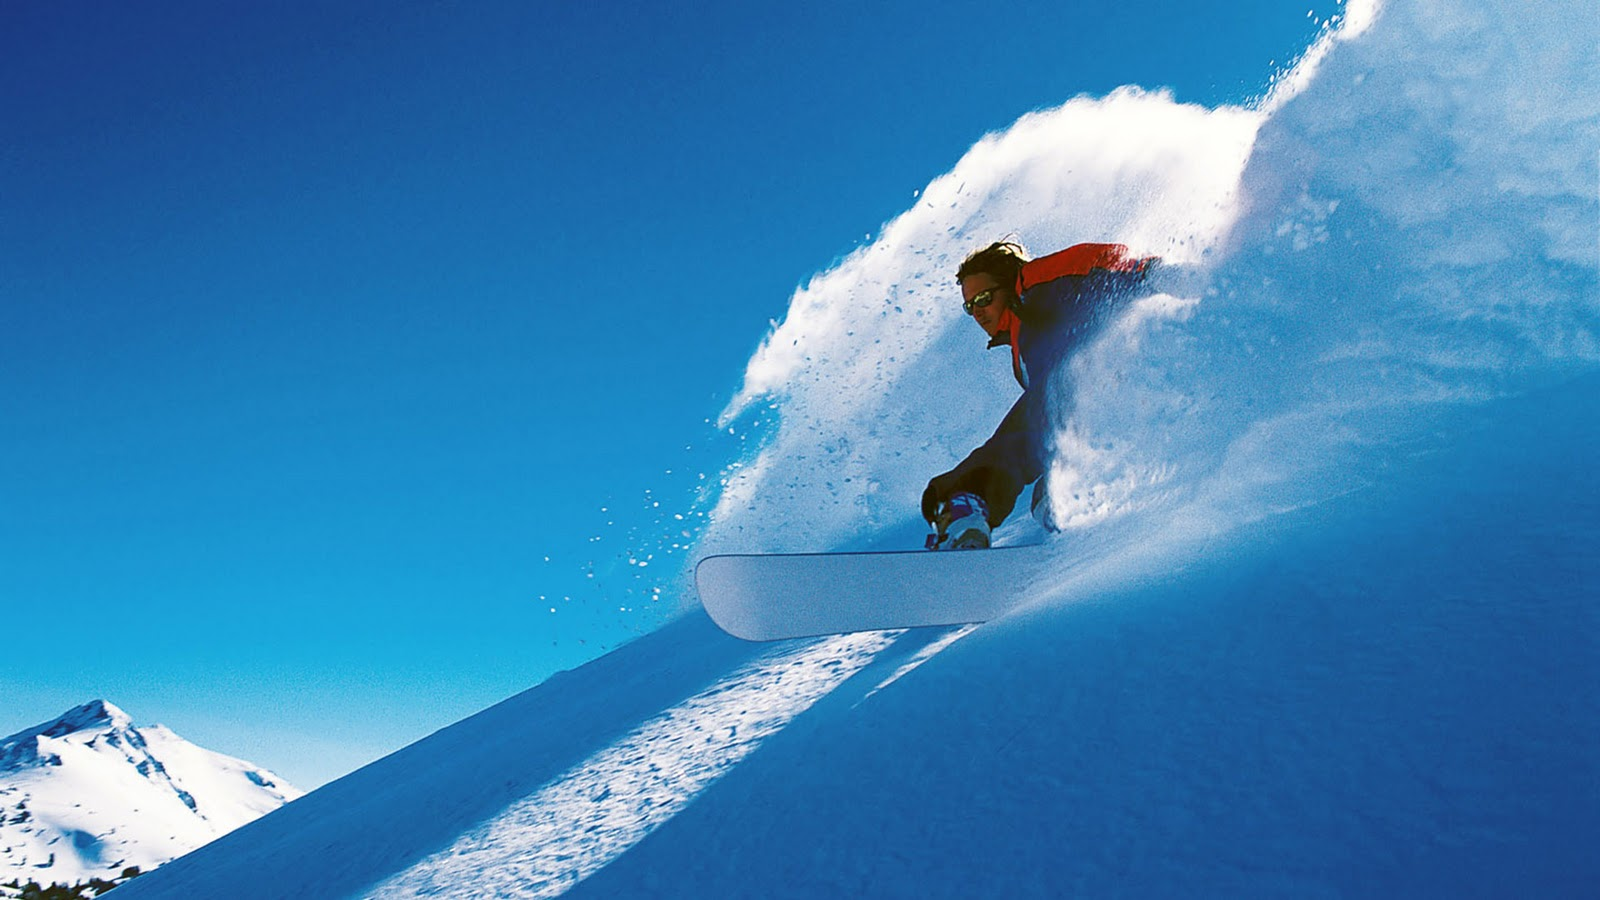 snowboarding wallpapers wallpaper-#38